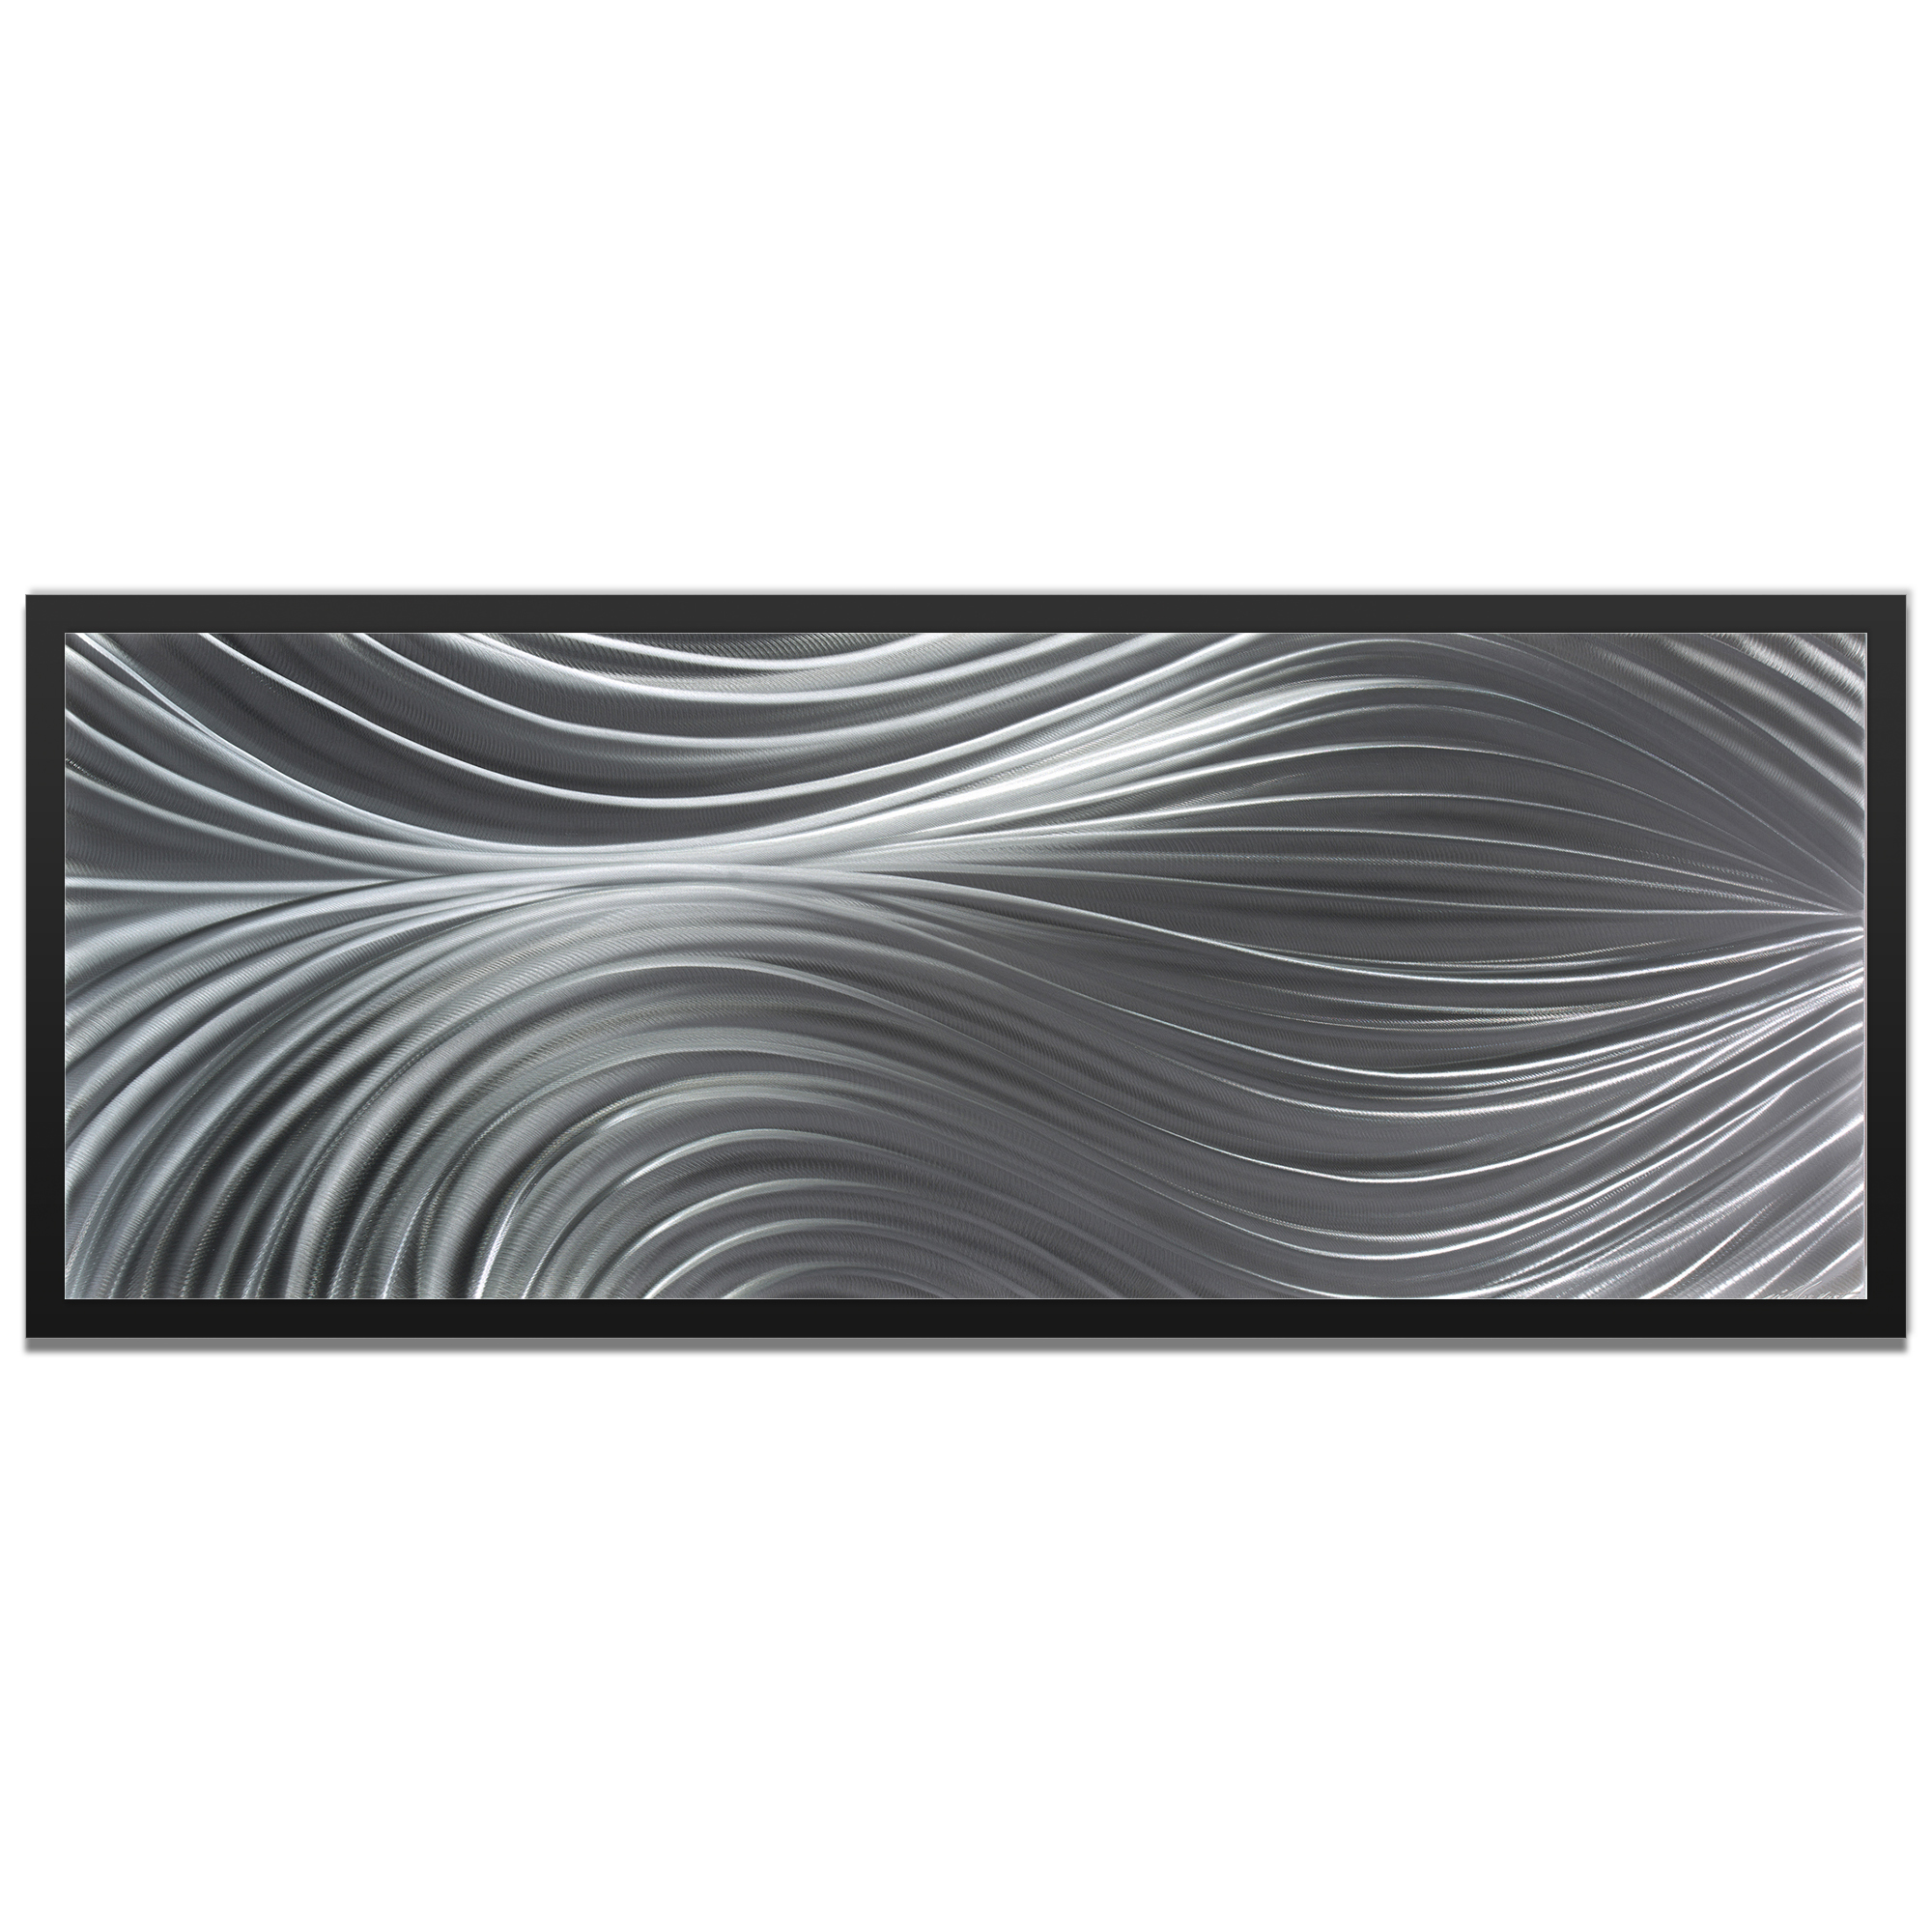 NAY 'Passing Currents Composition Framed' 48in x 19in Abstract Urban Decor Art on Colored Metal